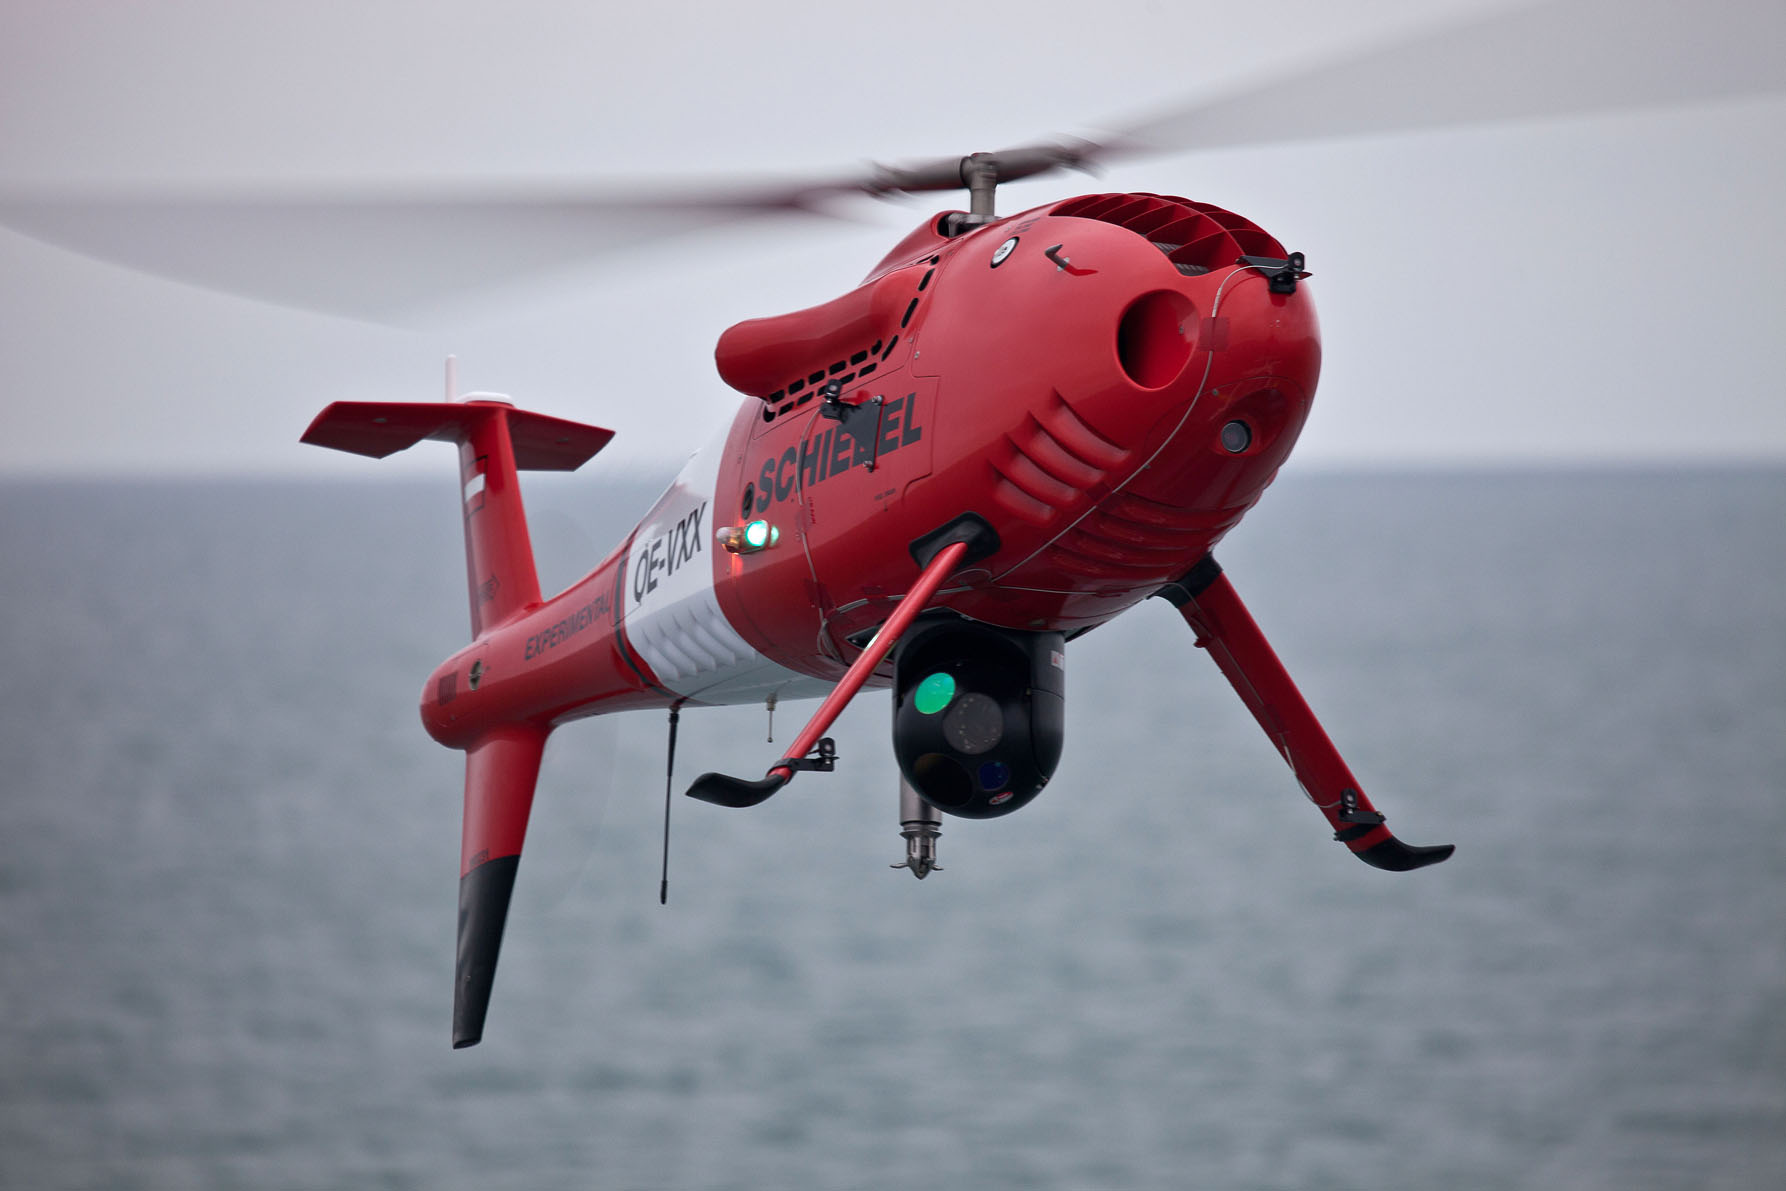 Camcopter S-100 completes French Navy trials